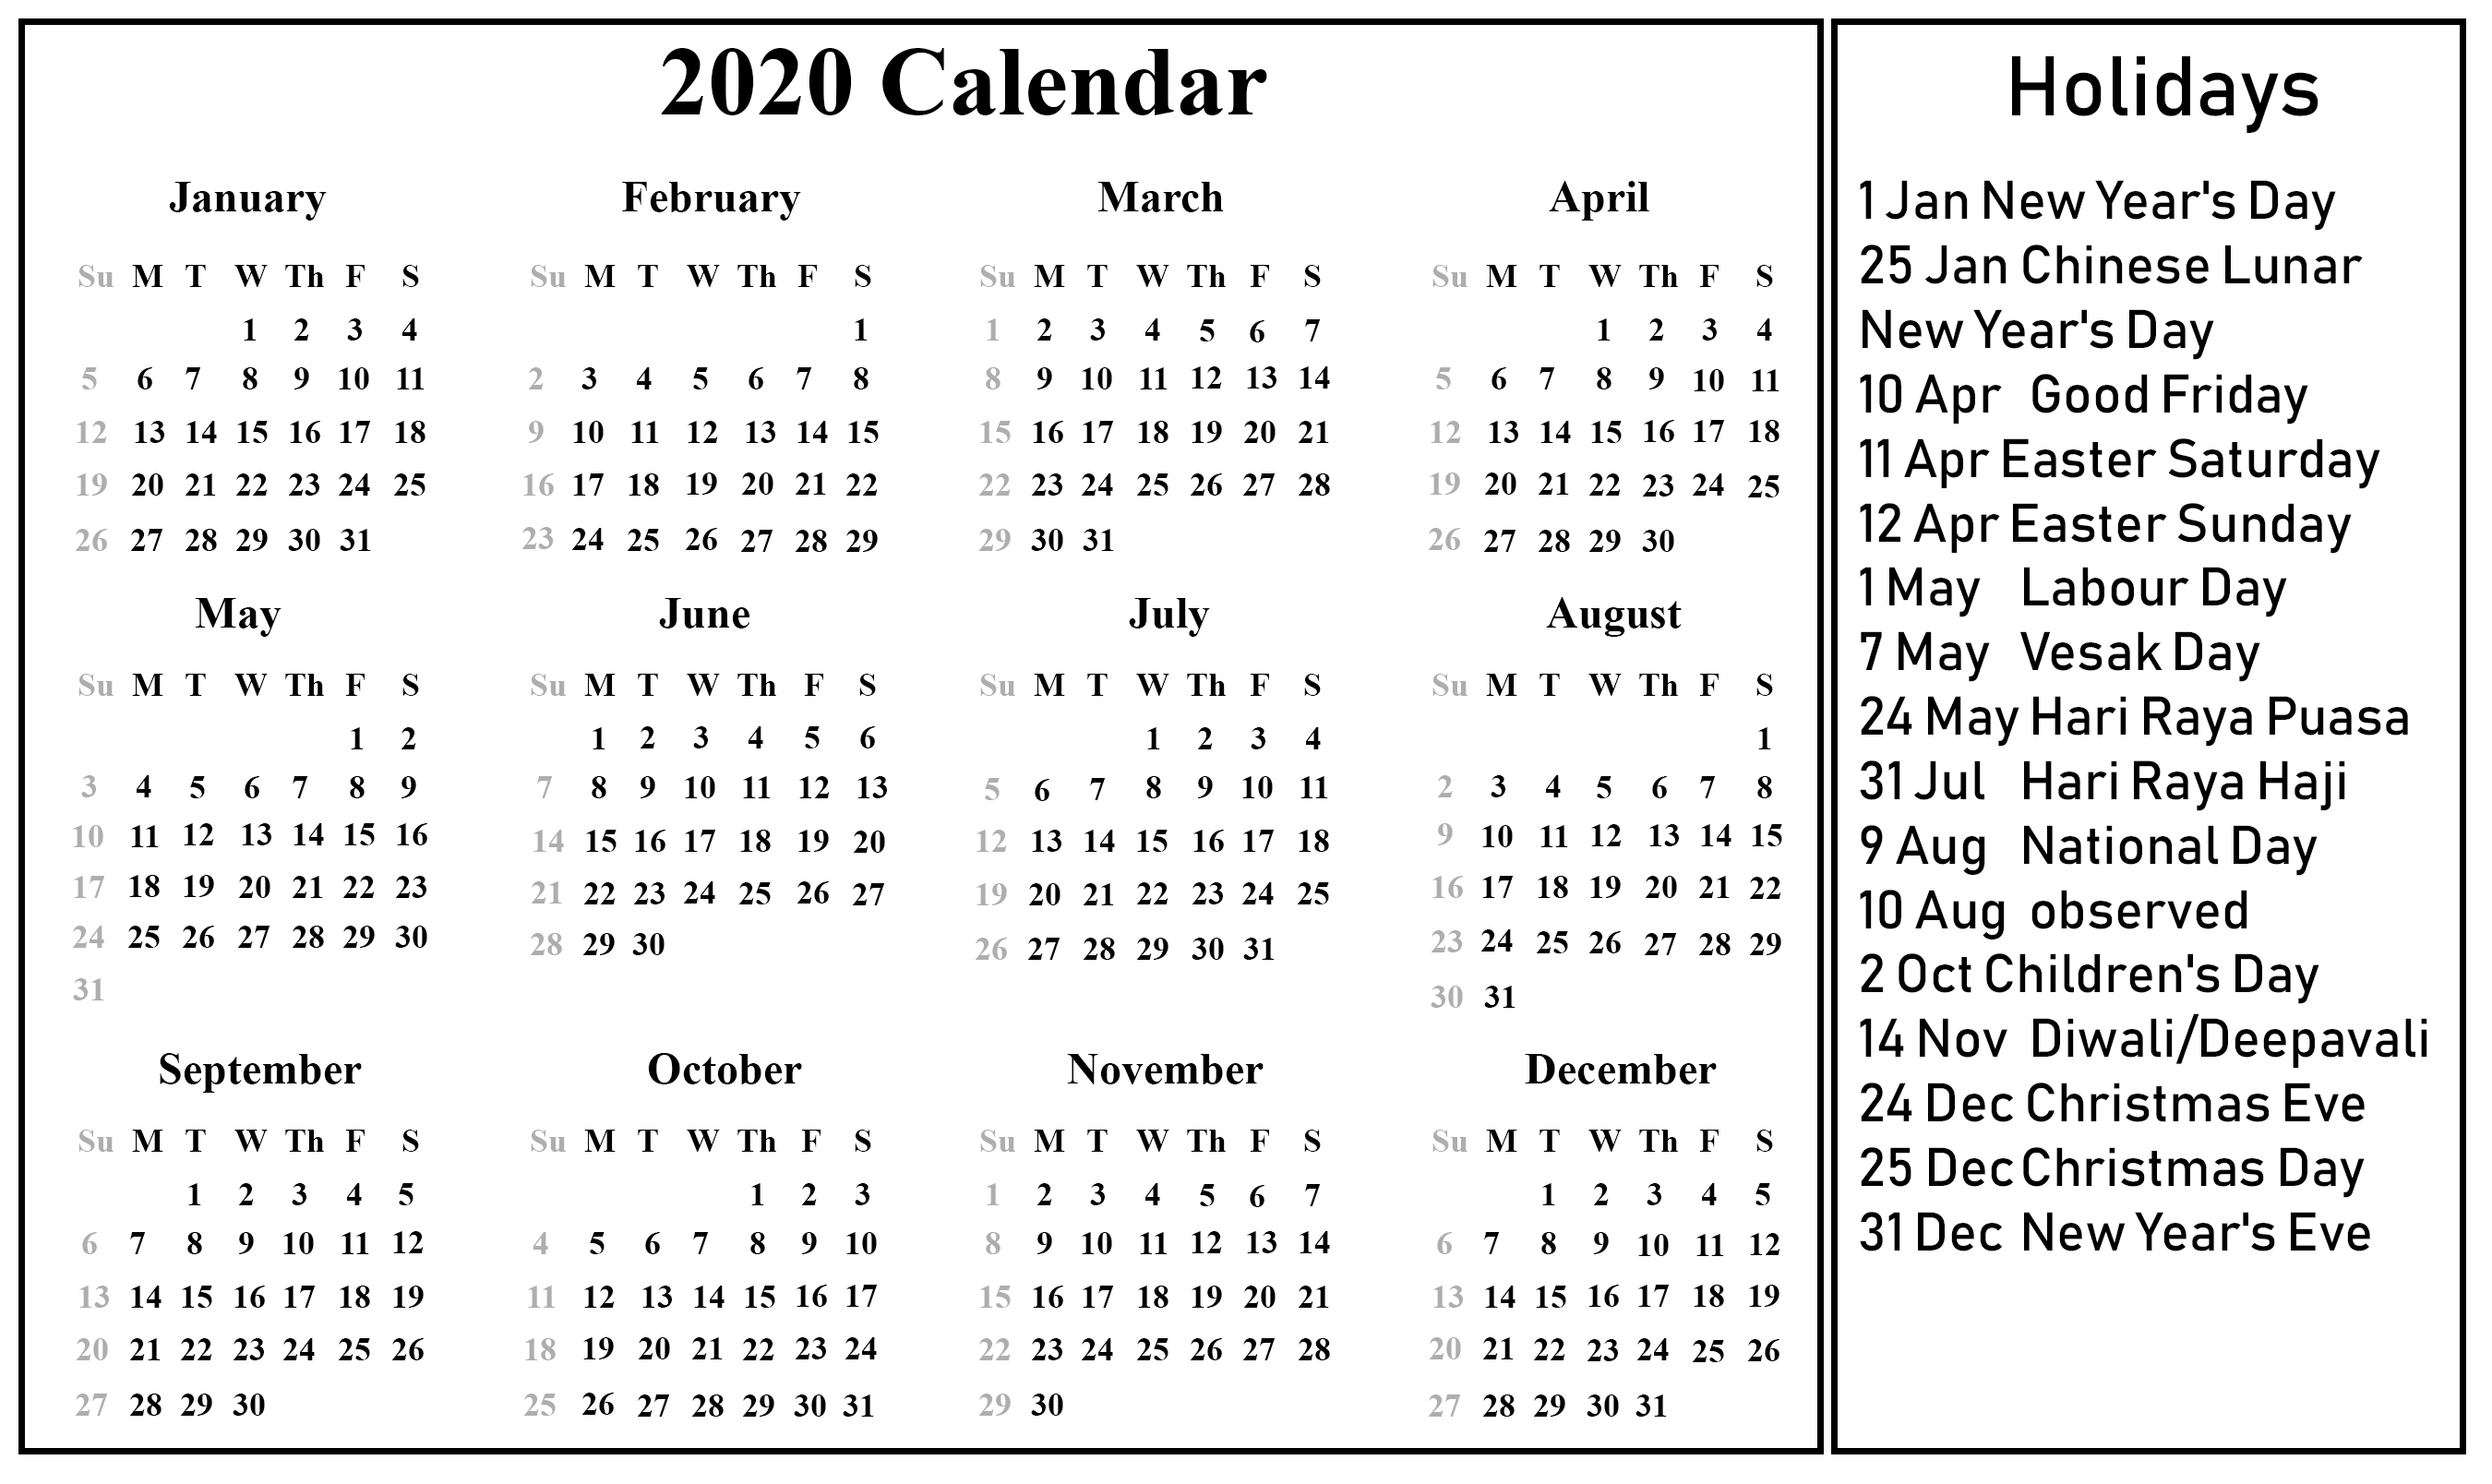 Free Blank Singapore Calendar 2020 [Pdf, Excel & Word] Format within 2020 Calendar Sunday To Saturday